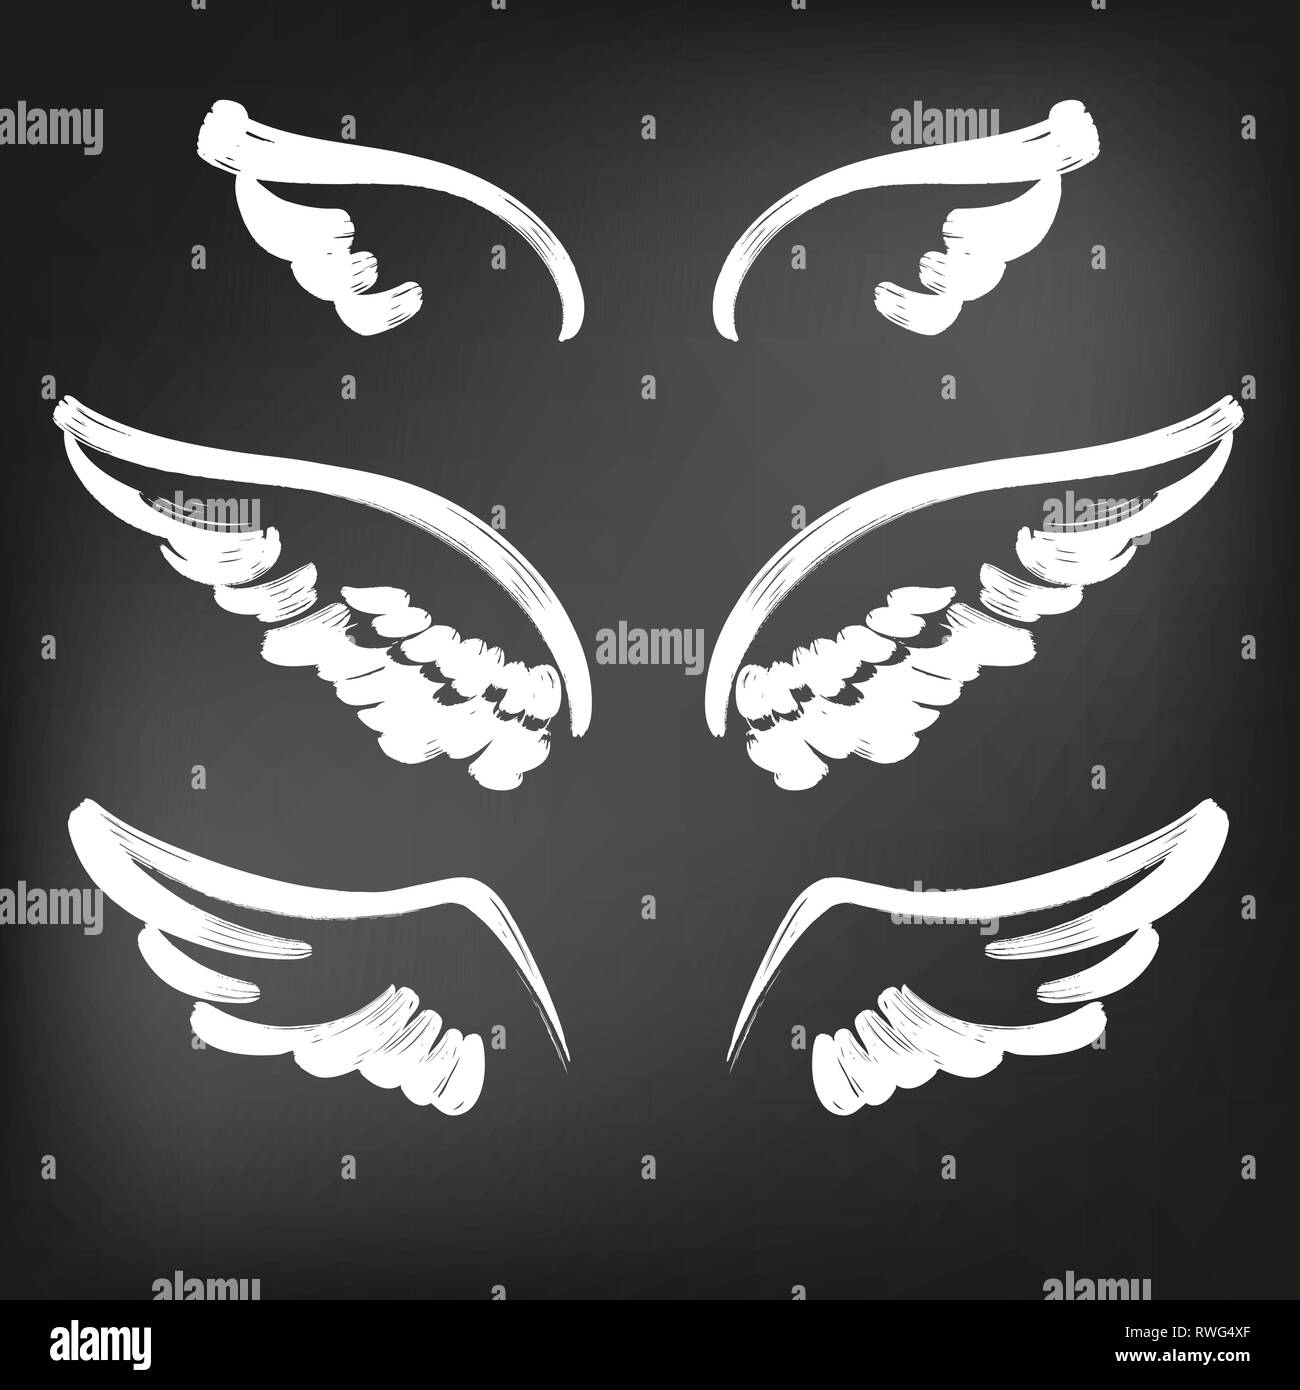 c5aeb600b Angel wings icon sketch collection, abstract wings sketch set icon  collection cartoonhand drawn vector illustration sketch, drawn in chalk on  a black